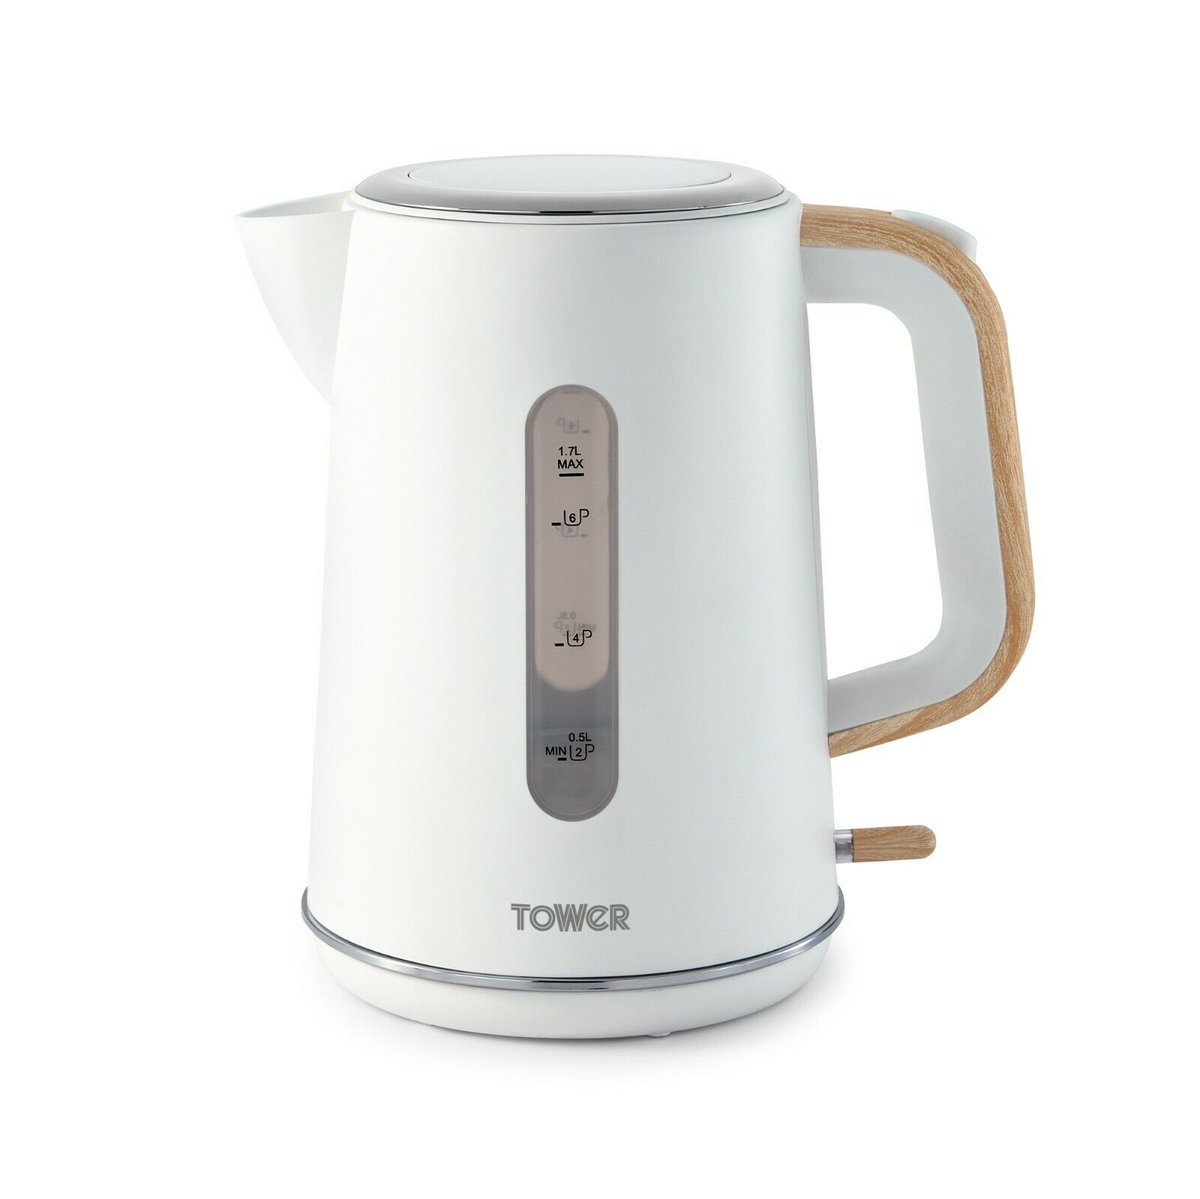 A Modern jug kettle with wood accents.  3Kw rapid boil technology with a 1.7 litre capacity and 360° cordless base.  Only £29.99 with free UK postage https://zcu.io/KcQZ   #tower #KingOf #Kettles #freeUKpostagepic.twitter.com/YtVWBFtfn6